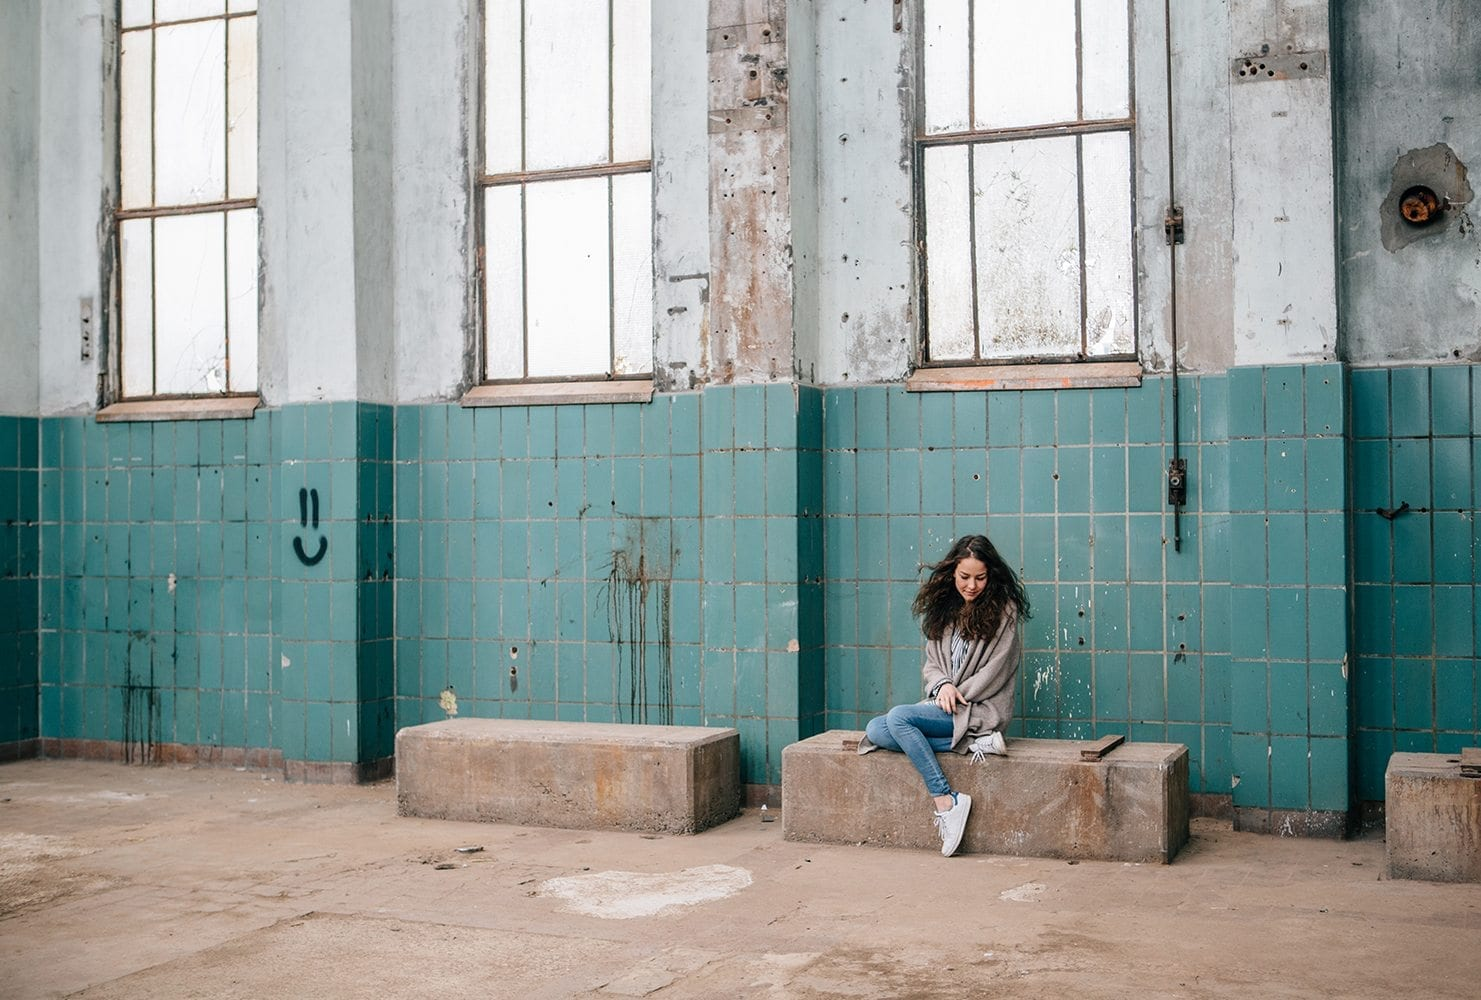 industrial look model session in Krachtcentrale in Huizen with beautiful brunette young girl